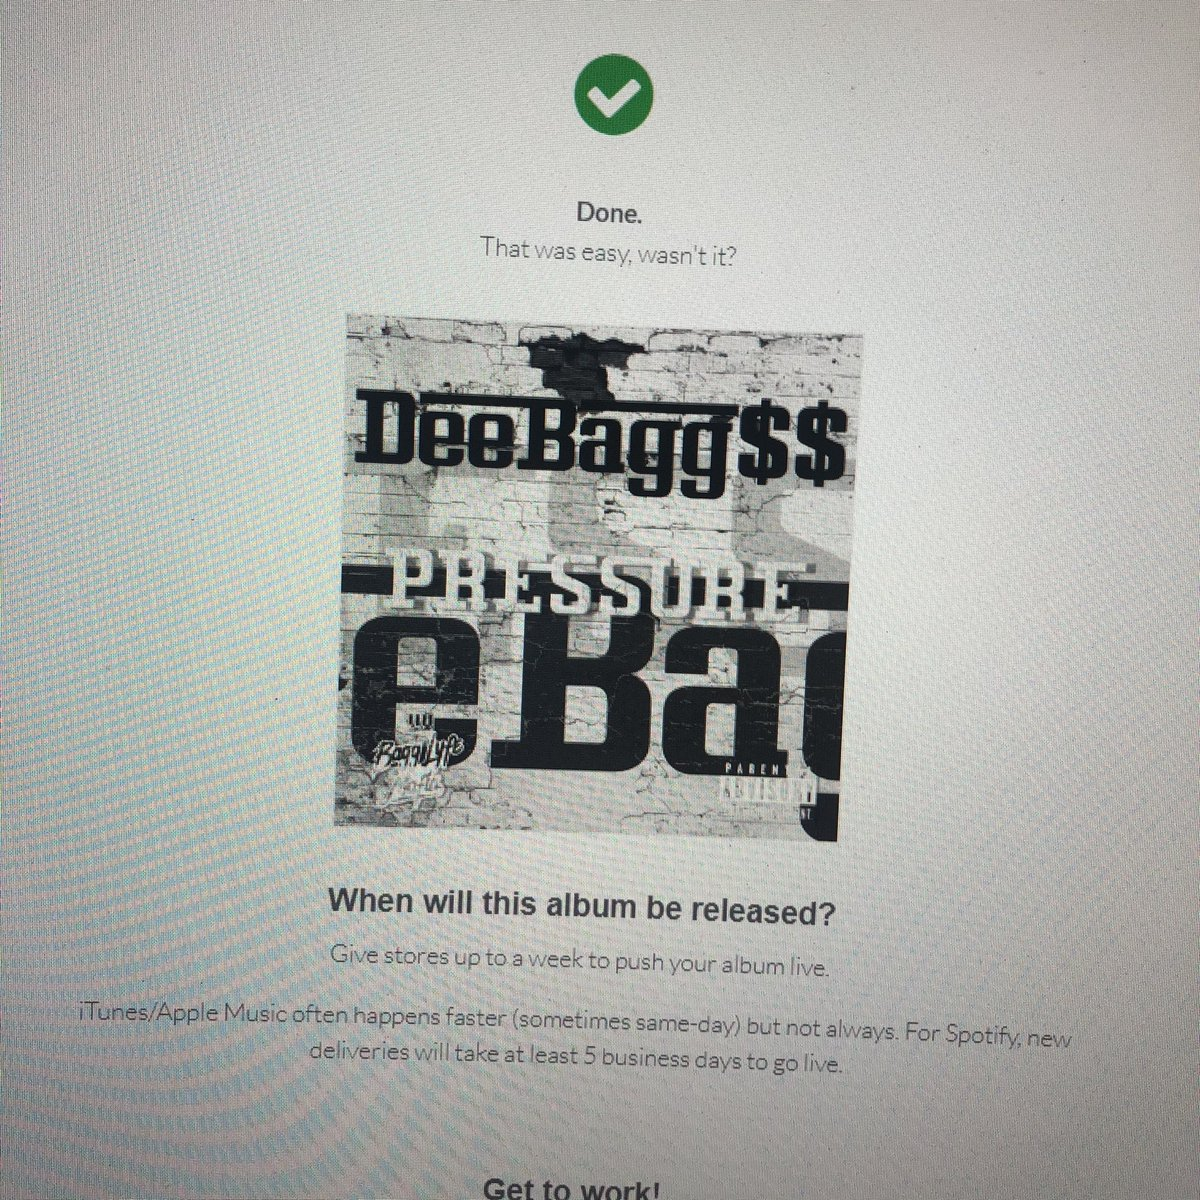 """PRESSURE"" by @itsbaggzhoe dropping soon. It's the waiting game now but it's coming 💰💰😎😎 #mixtape #hiphop #music #rap #rapper #newmusic #dj #artist #trap #beats #unsignedartist #hiphopmusic #follow #spotify #like #studio #rapmusic #hiphopartist #youtube #bhfyp #distrokid https://t.co/AOHNYAbtT7"